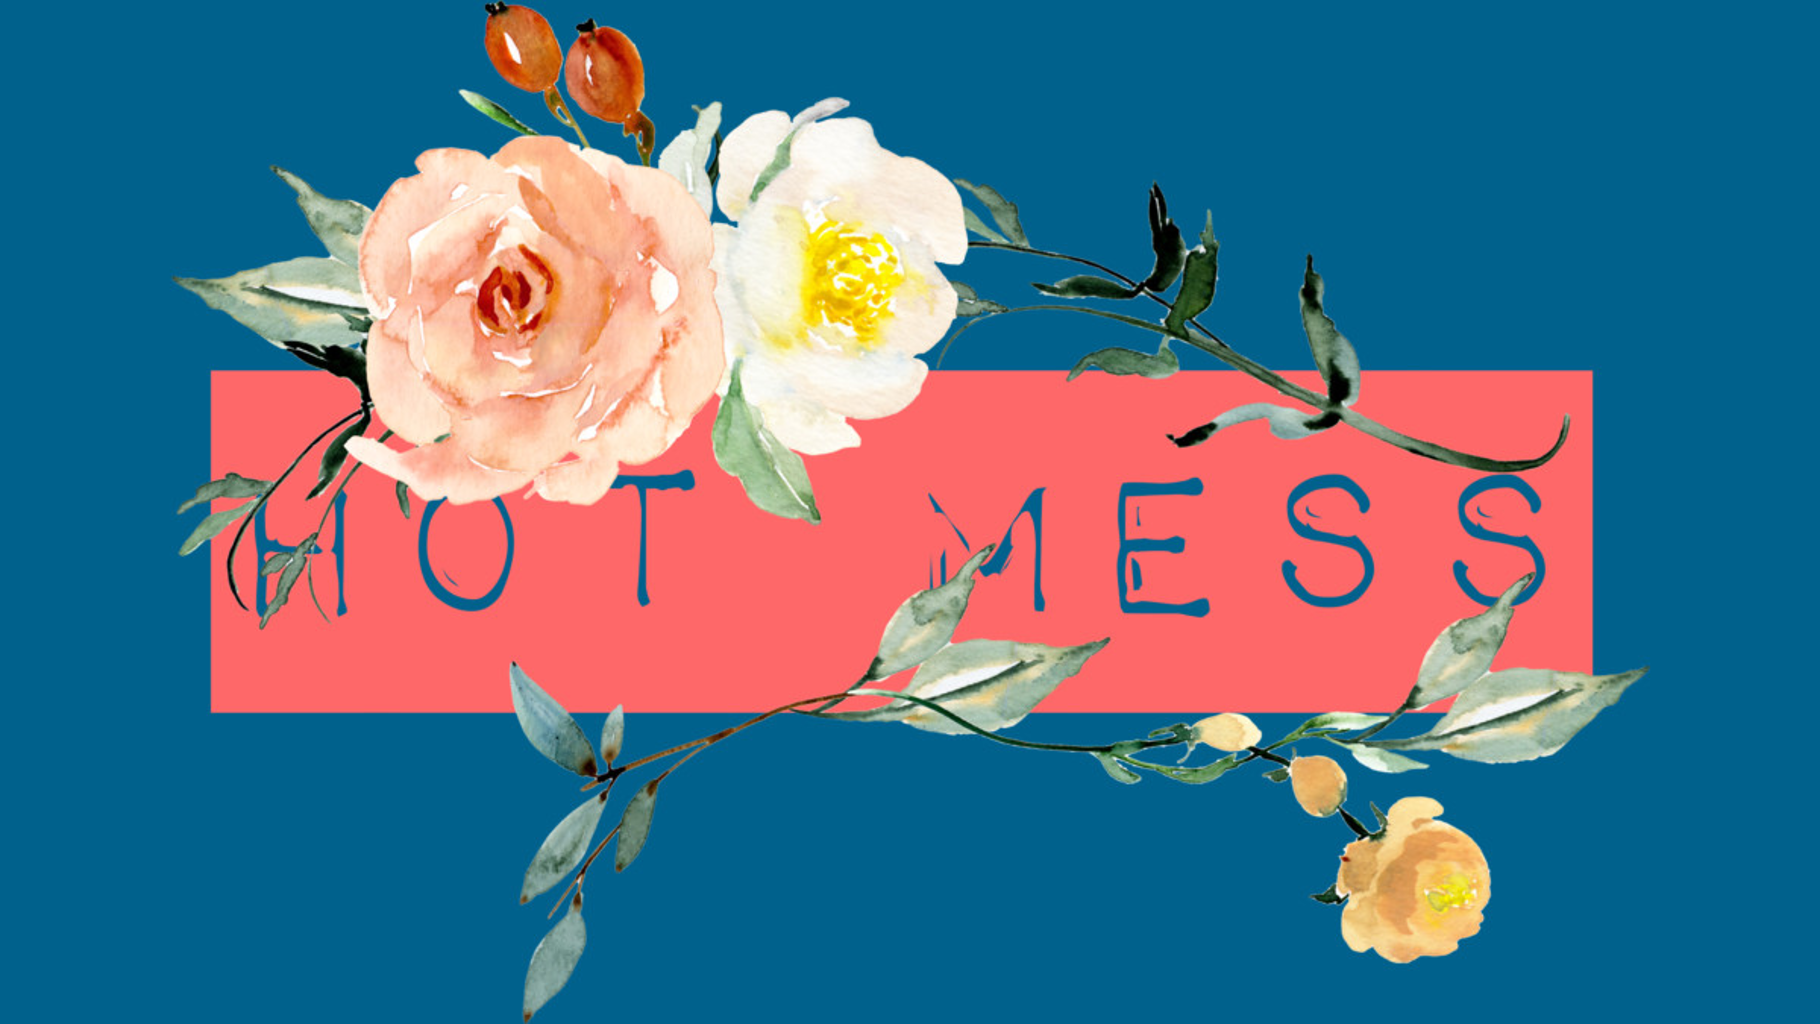 Design by Humans: HOT MESS!